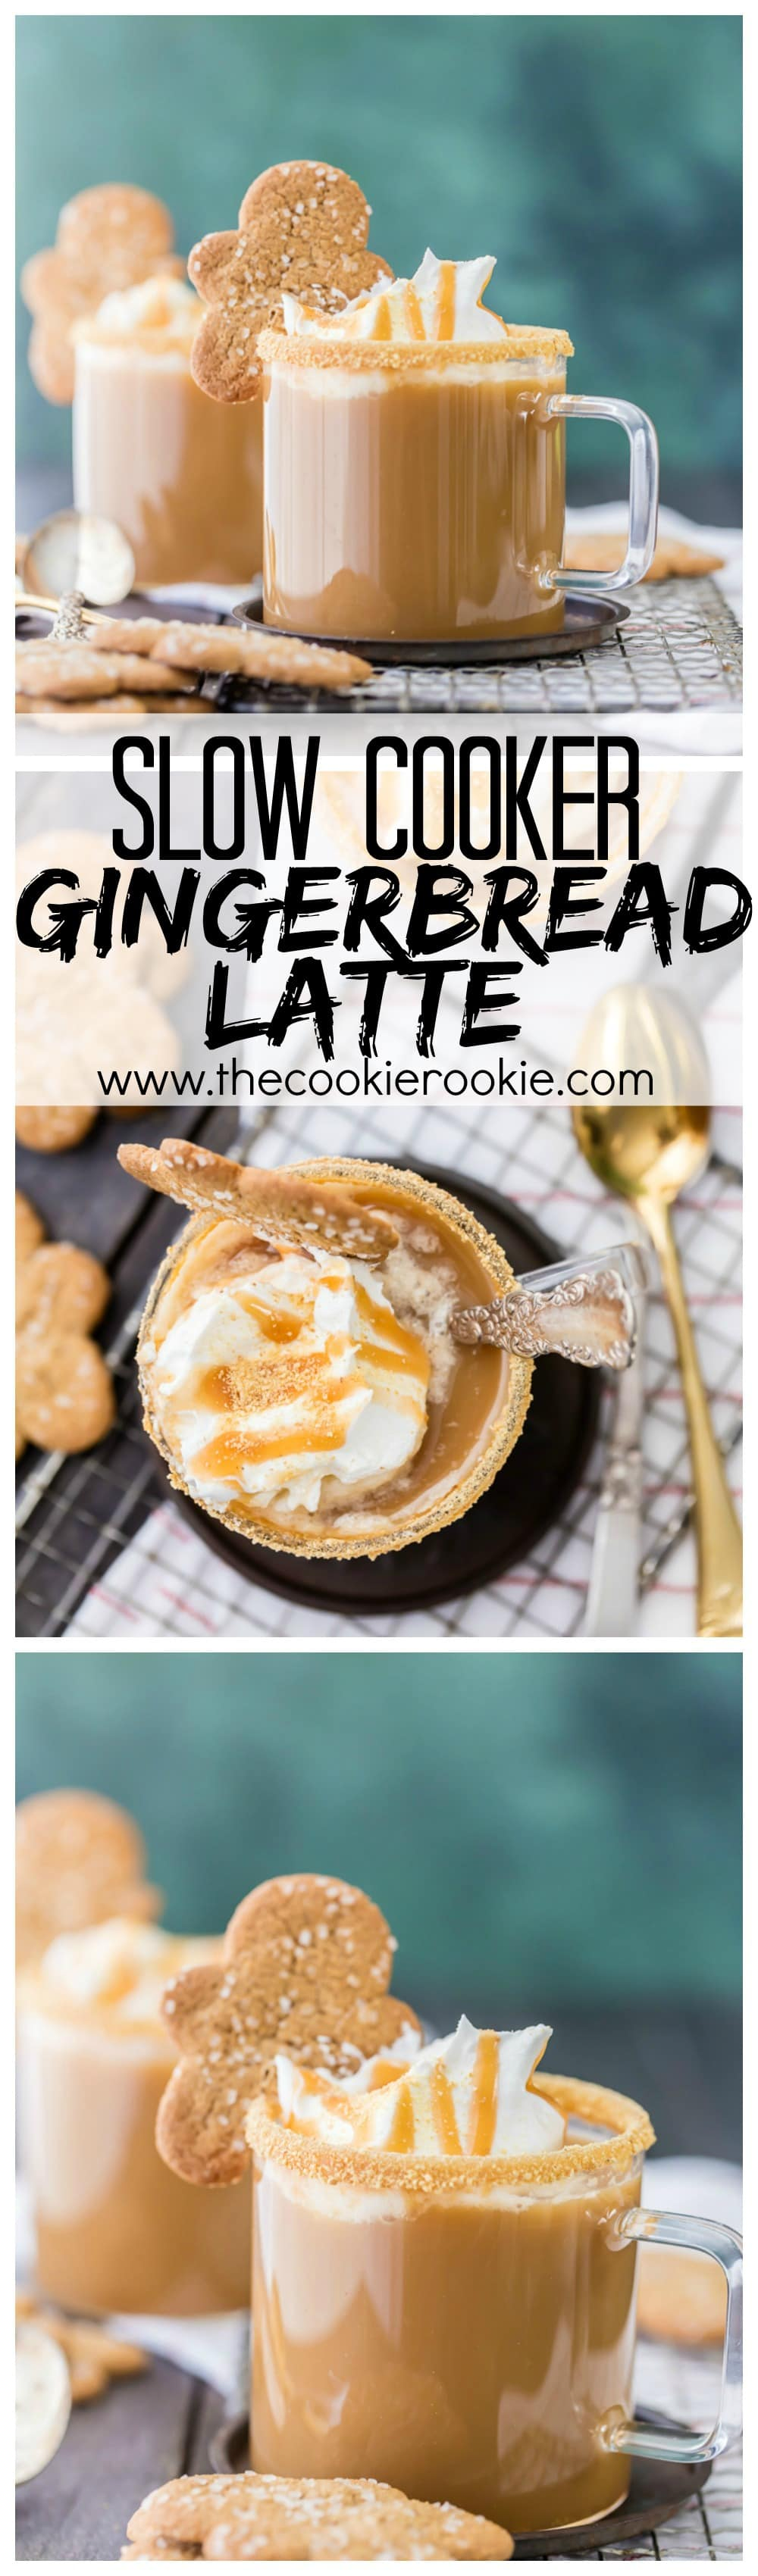 Slow Cooker Gingerbread Latte!! Easy is best...and these are best! It tastes and smells like Christmas in my house thanks to these Crockpot Gingerbread Lattes!!